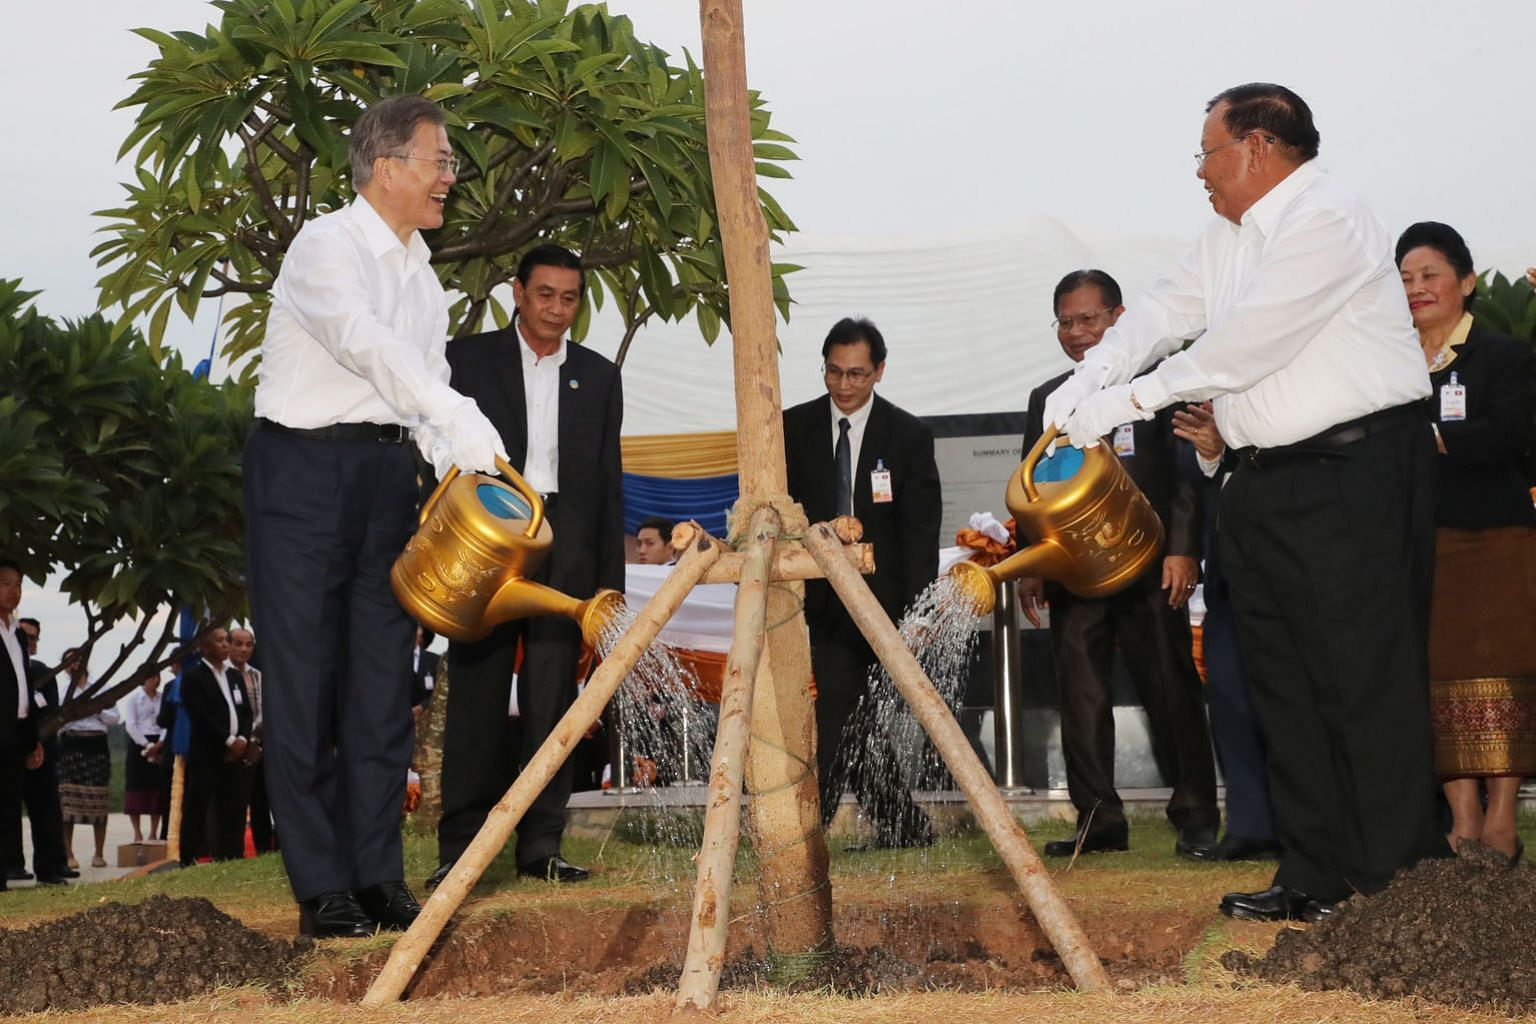 South Korean President Moon Jae-in and Laotian President Bounnhang Vorachith watering a tree after planting it together on the bank of the Mekong River on Thursday. Mr Moon was in Laos during his six-day trip to three South-east Asian countries. PHOT